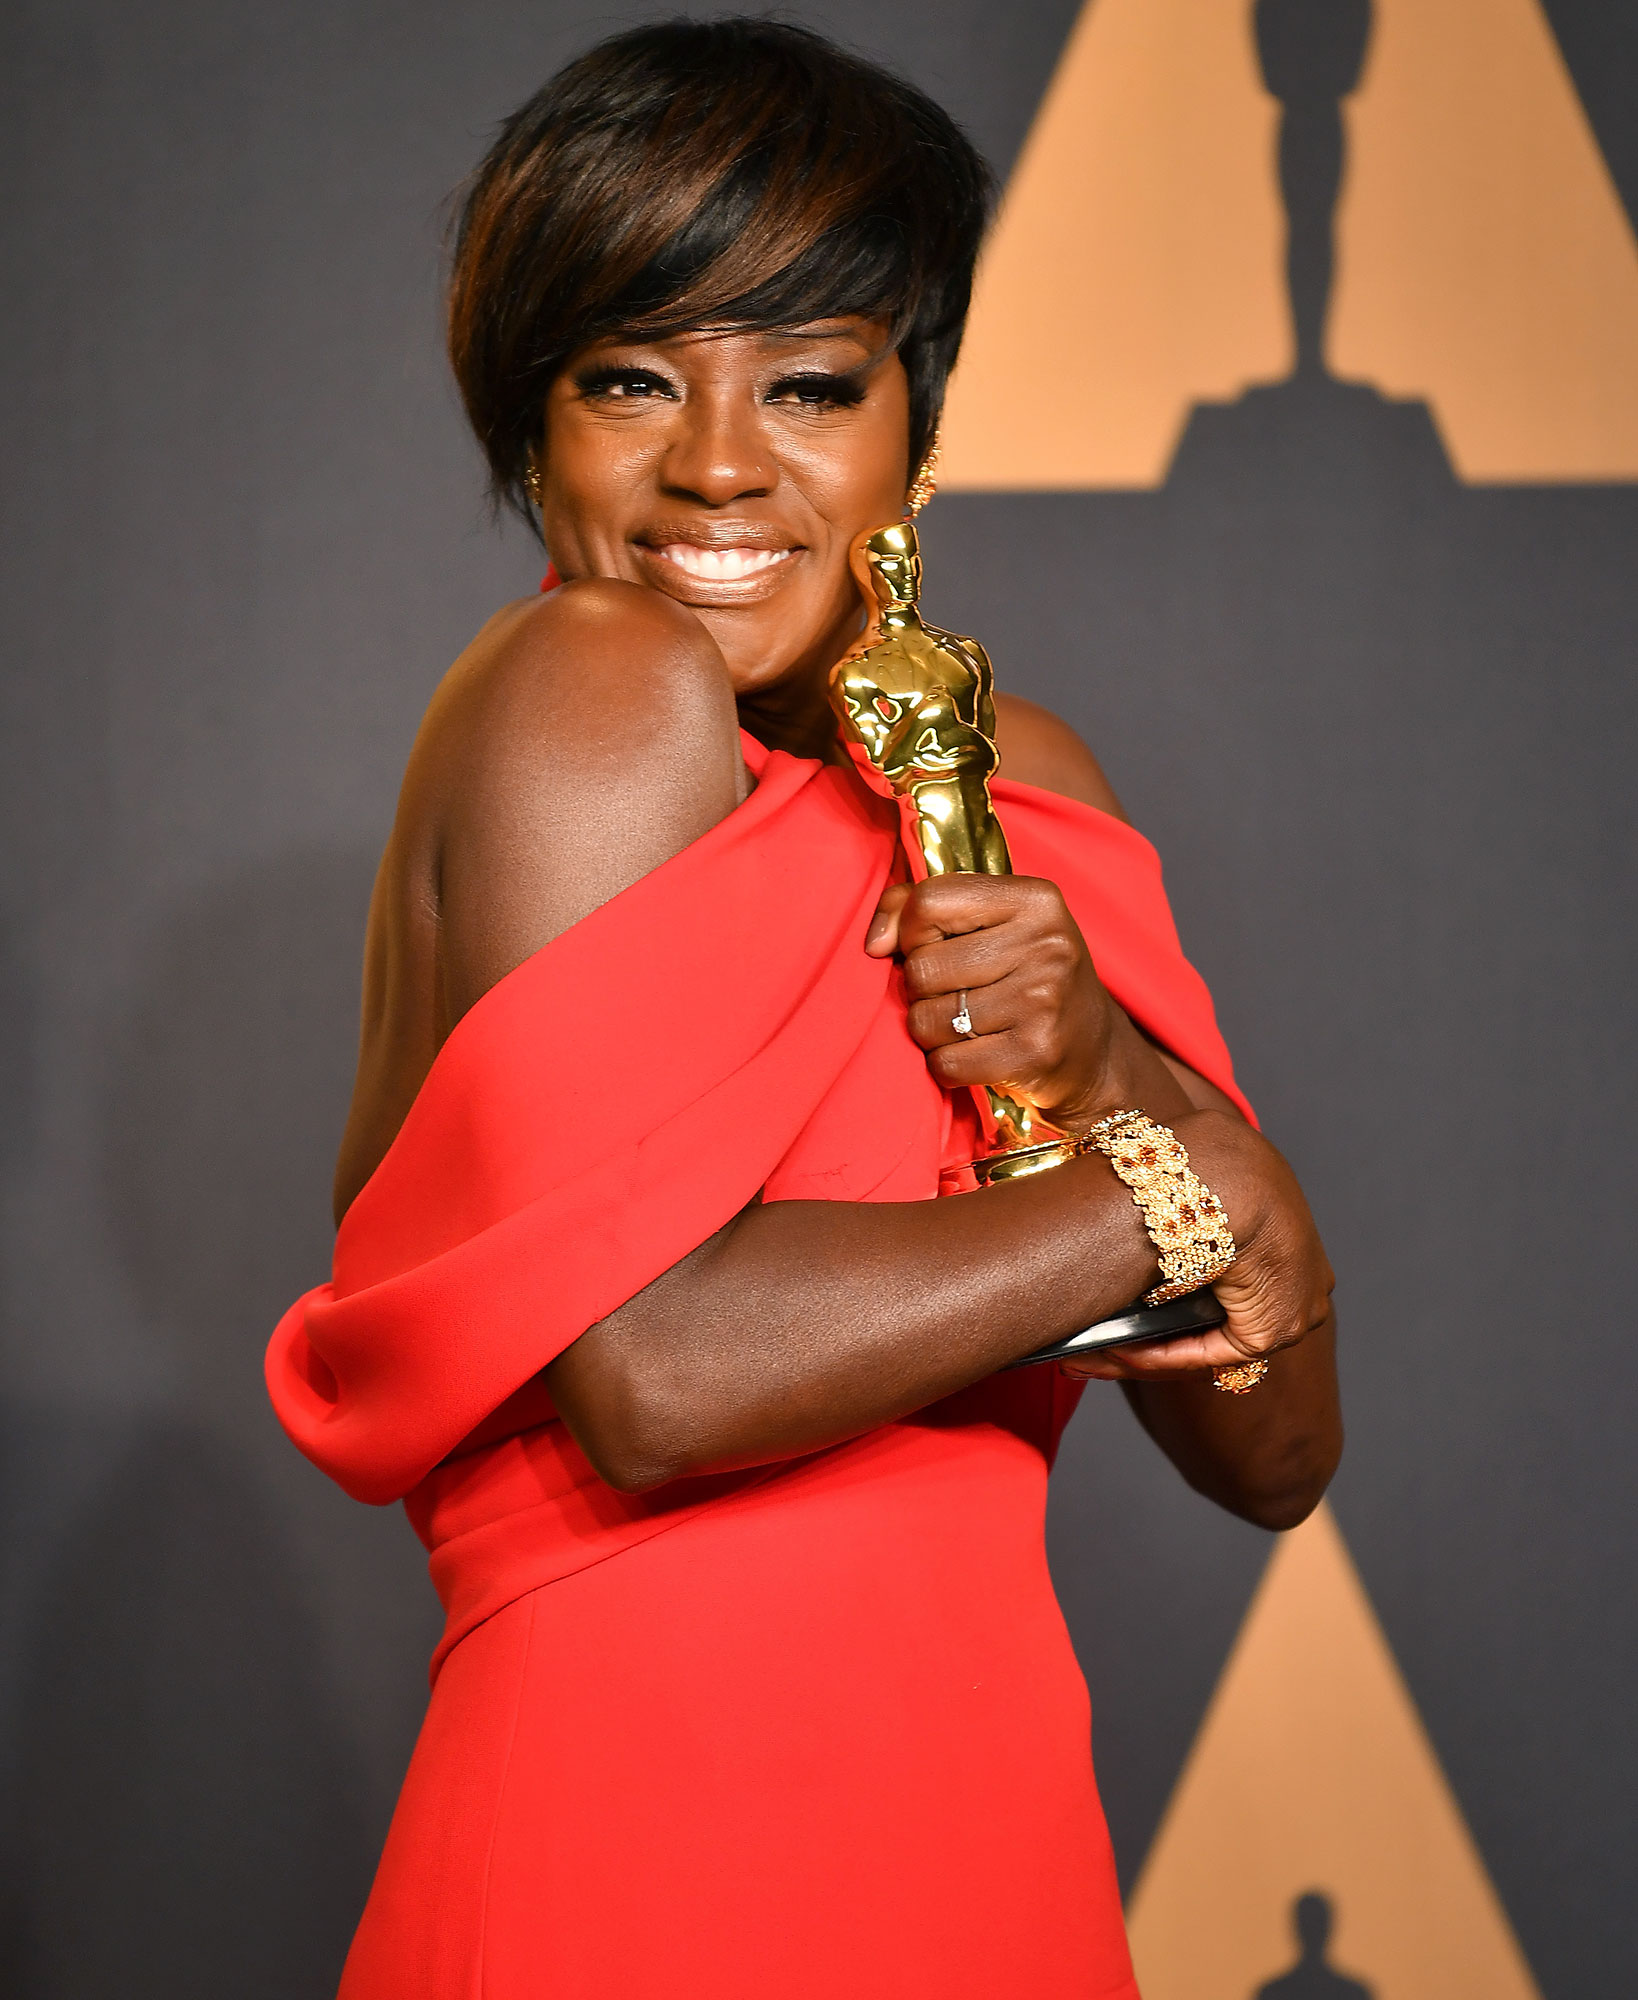 HOLLYWOOD, CA - FEBRUARY 26:  Actor Viola Davis, winner of the Best Supporting Actress Award for her role in 'Fences',  poses in the press room during the 89th Annual Academy Awards at Hollywood & Highland Center on February 26, 2017 in Hollywood, California.  (Photo by Jeff Kravitz/FilmMagic)